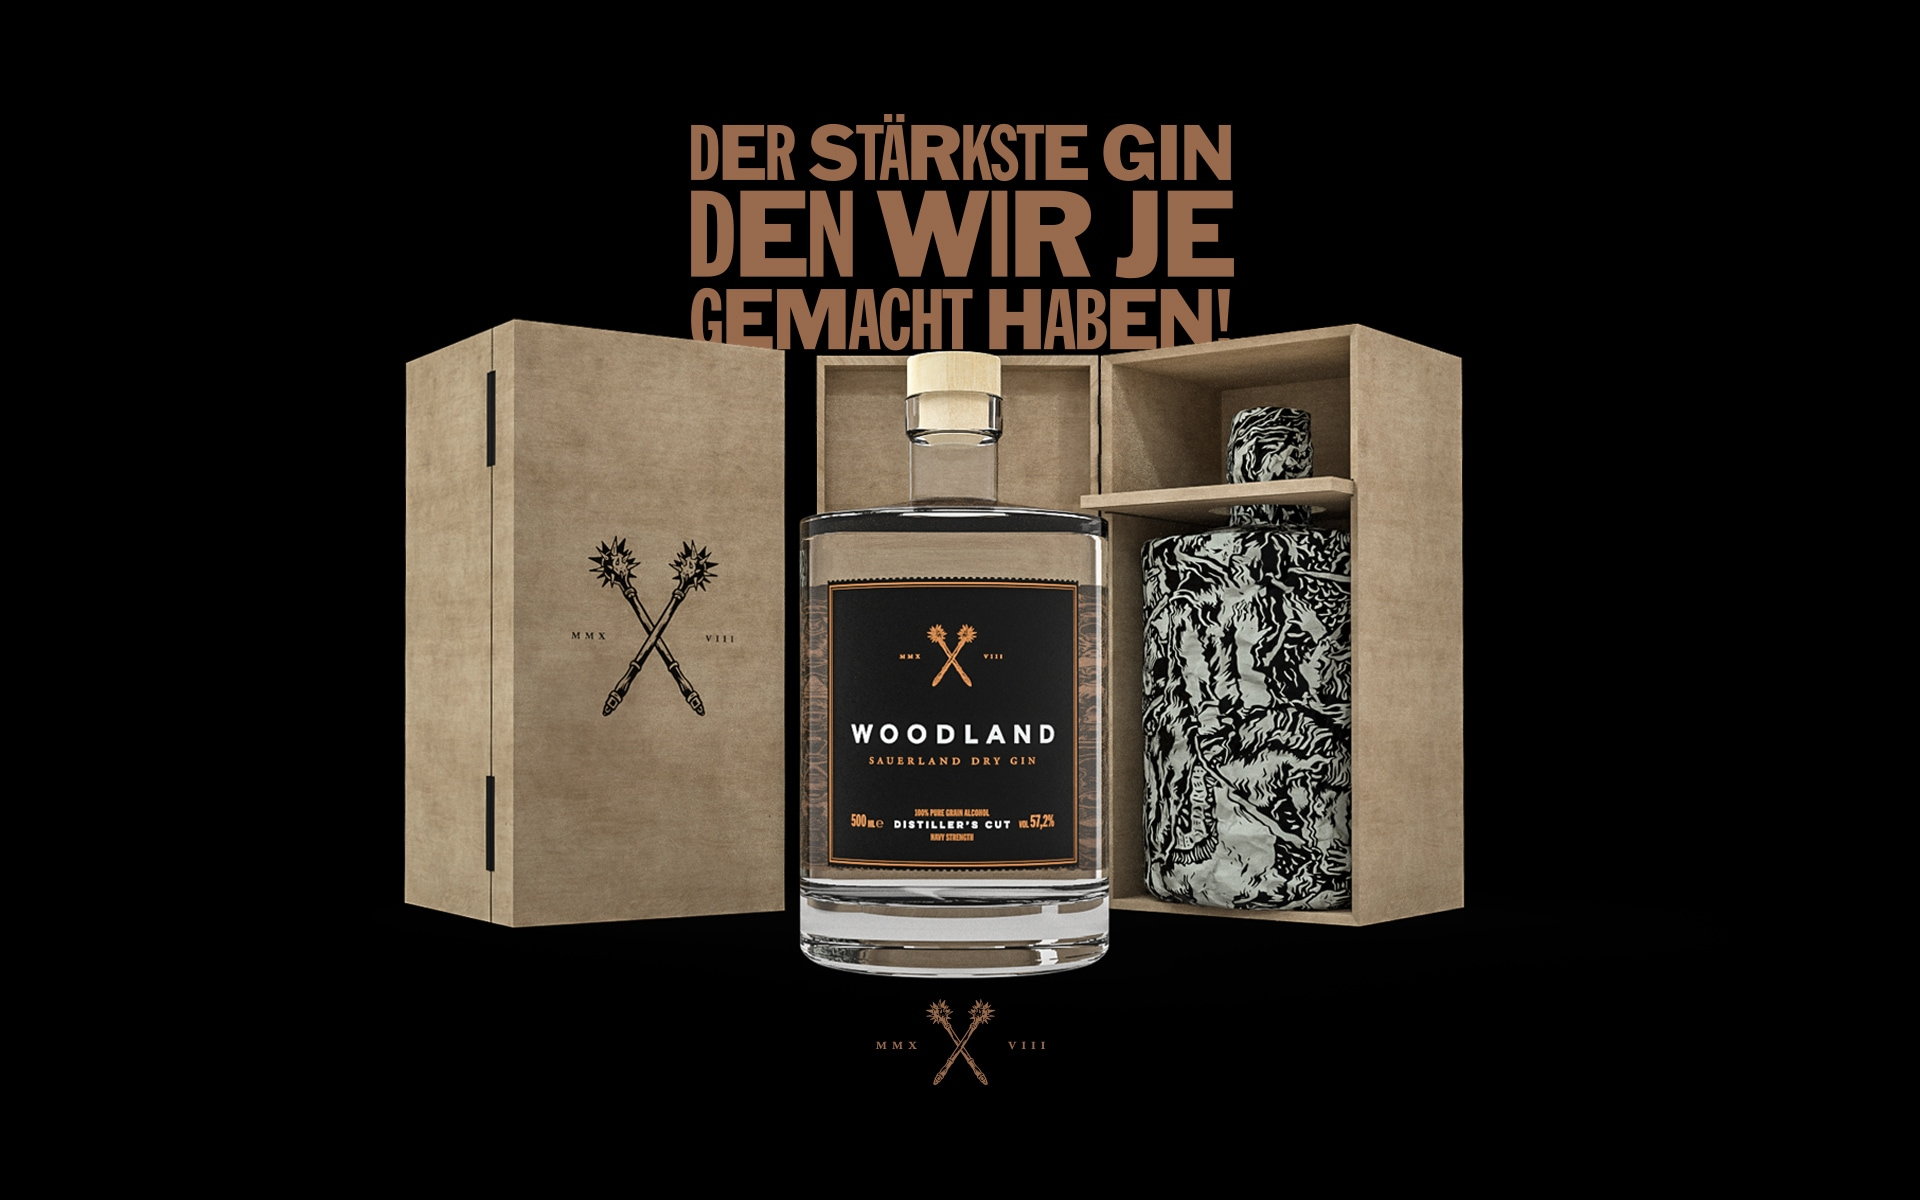 Woodland Gin Distillers Cut